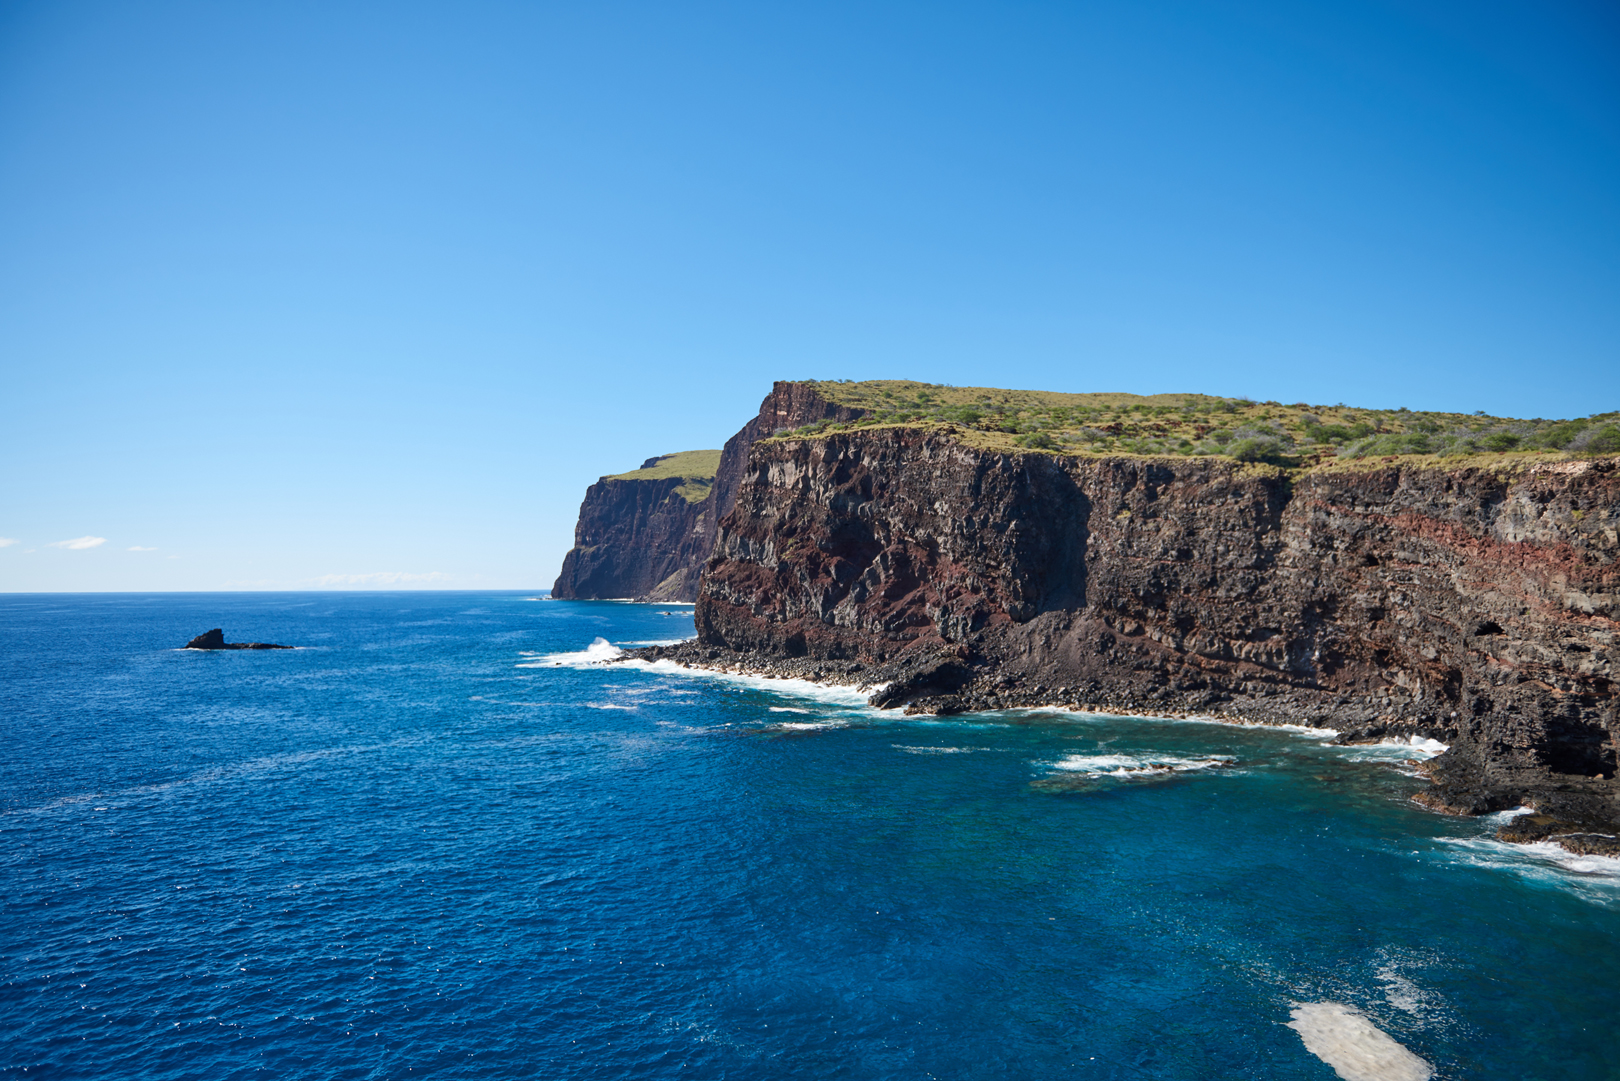 Photo of lanai island of Hawaii, water and cliffs, bright blue sky